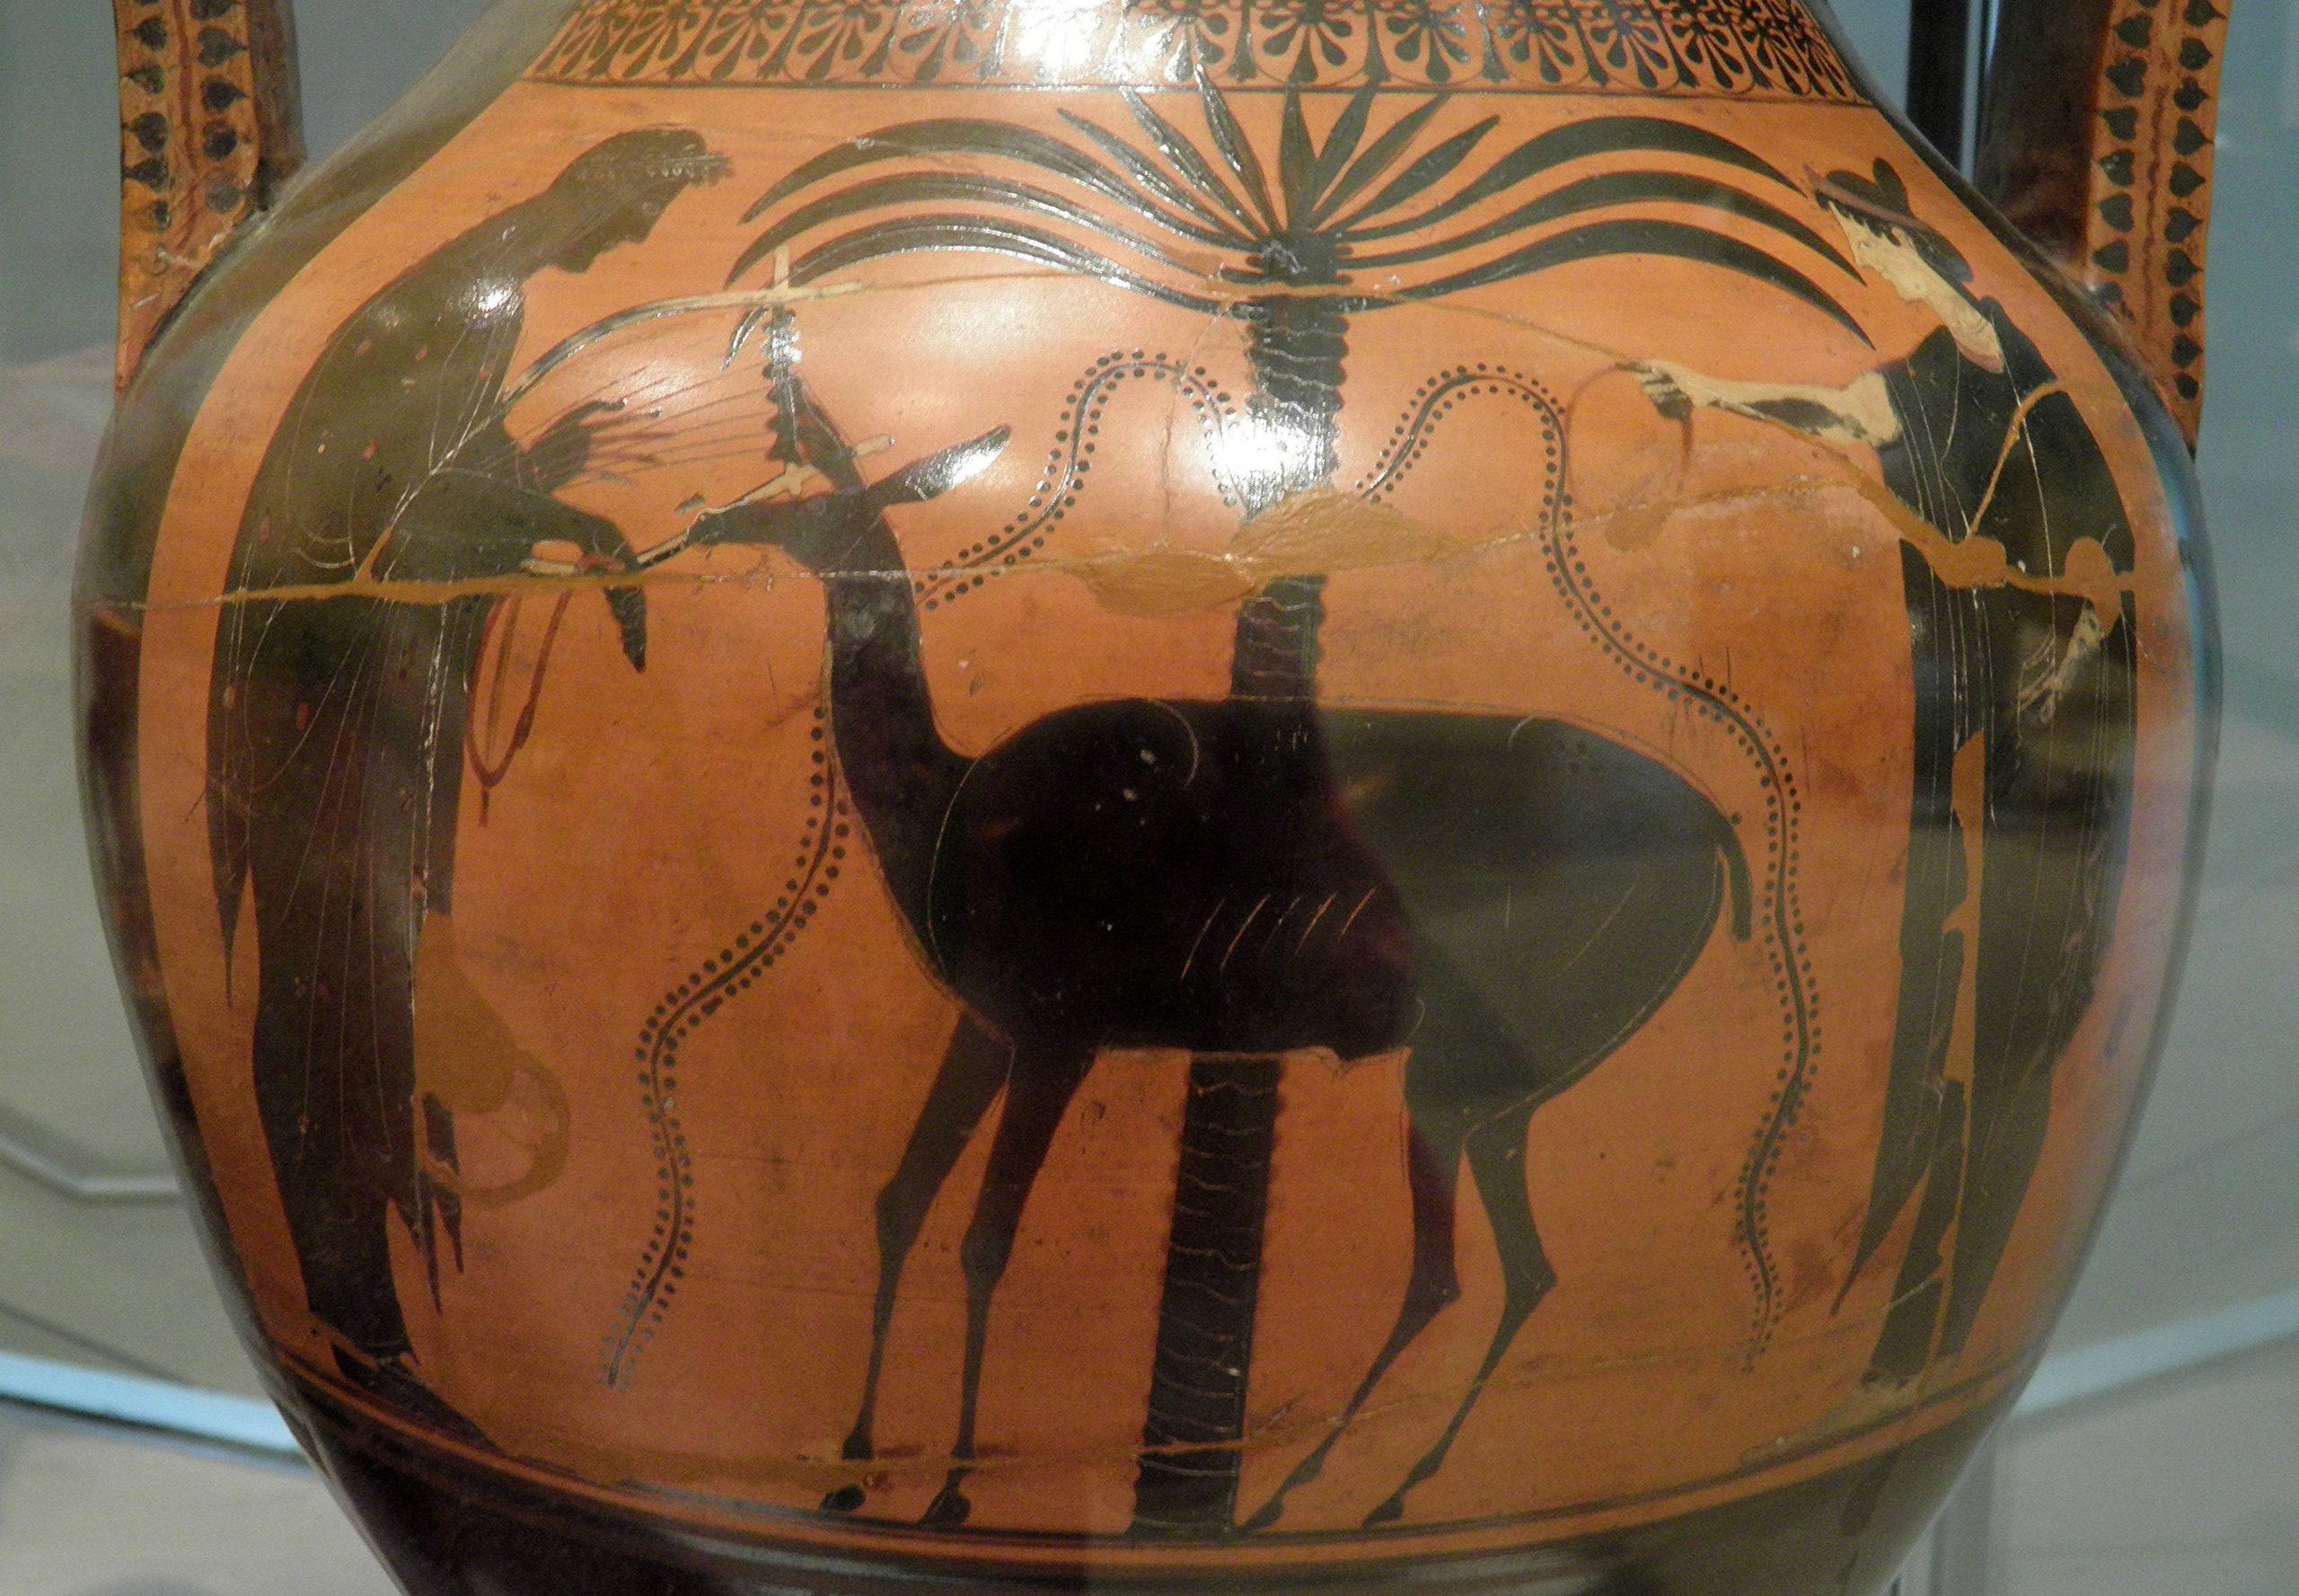 Athenian black-figure amphora showing Apollo, Leto, and an elegant deer with a palm tree (Ashmolean Museum, courtesy wikimedia)